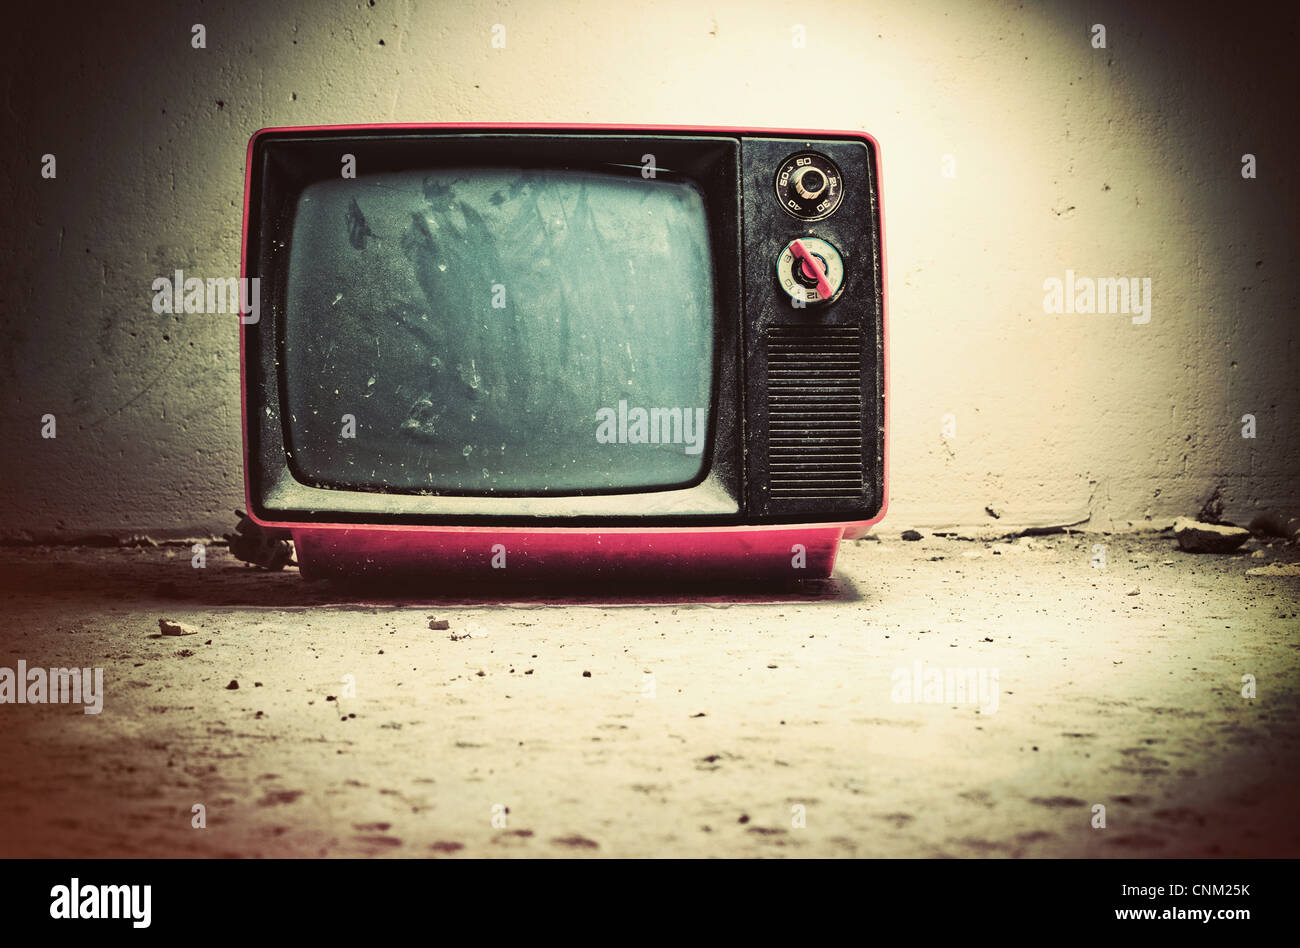 Old TV in room. Retro style colors. - Stock Image